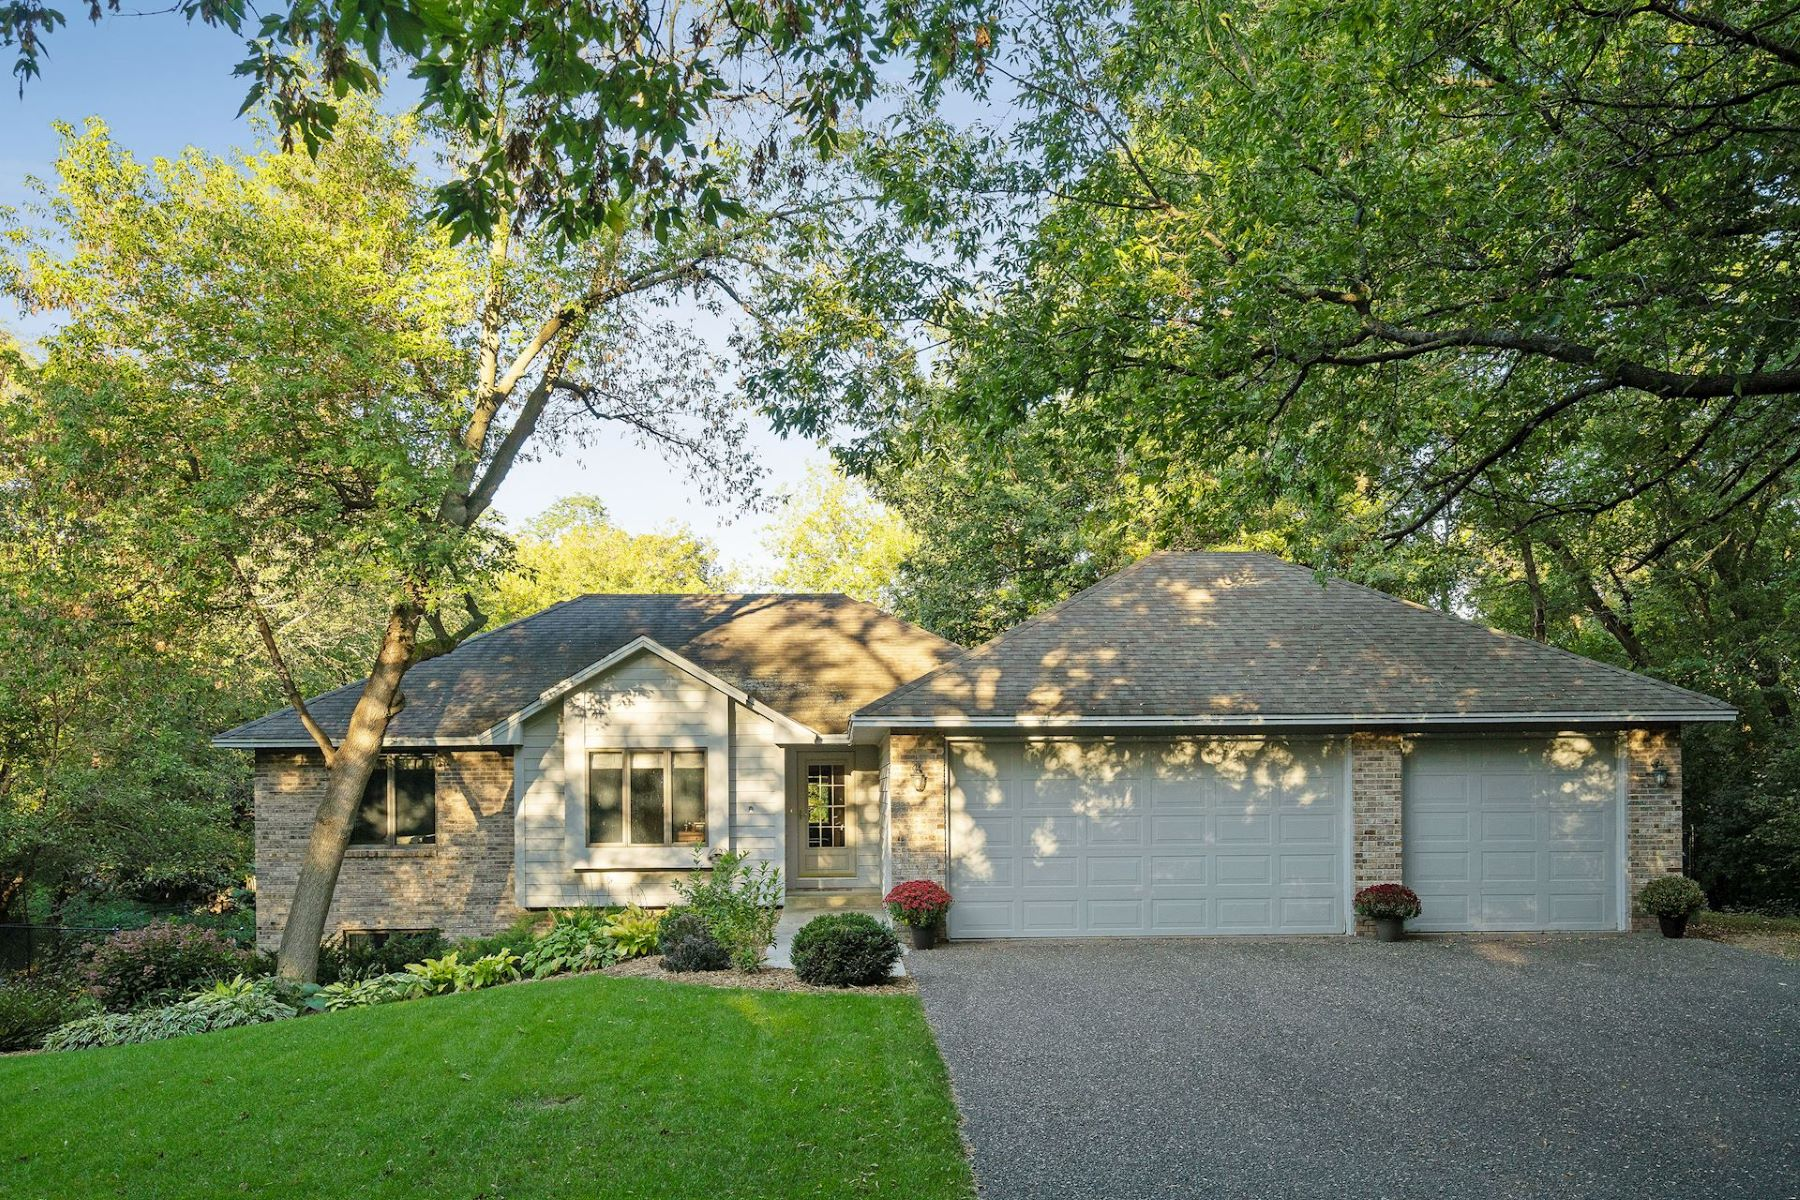 Single Family Homes für Verkauf beim Spacious 4 Bedroom Home in Minnetonka Situated on Over Half Acre Private Lot 15424 Highwood Drive, Minnetonka, Minnesota 55345 Vereinigte Staaten